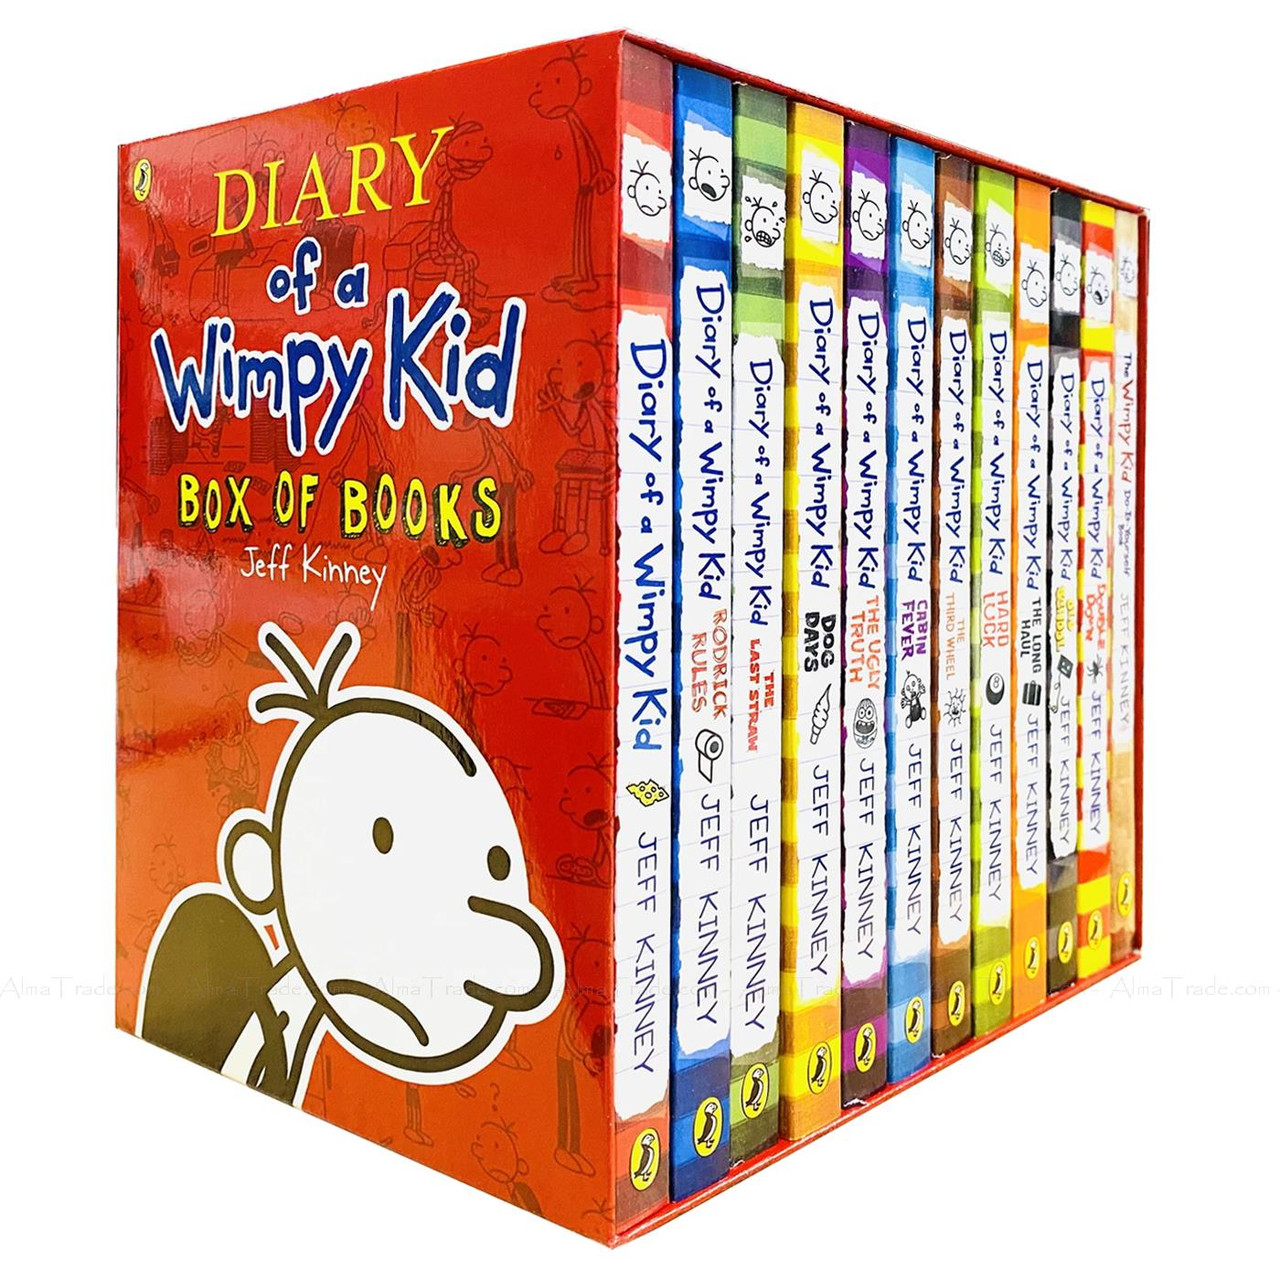 Diary Of A Wimpy Kid Classic Reading Collection By Jeff Kinney 12 Books Box Set Alma Trade Ltd